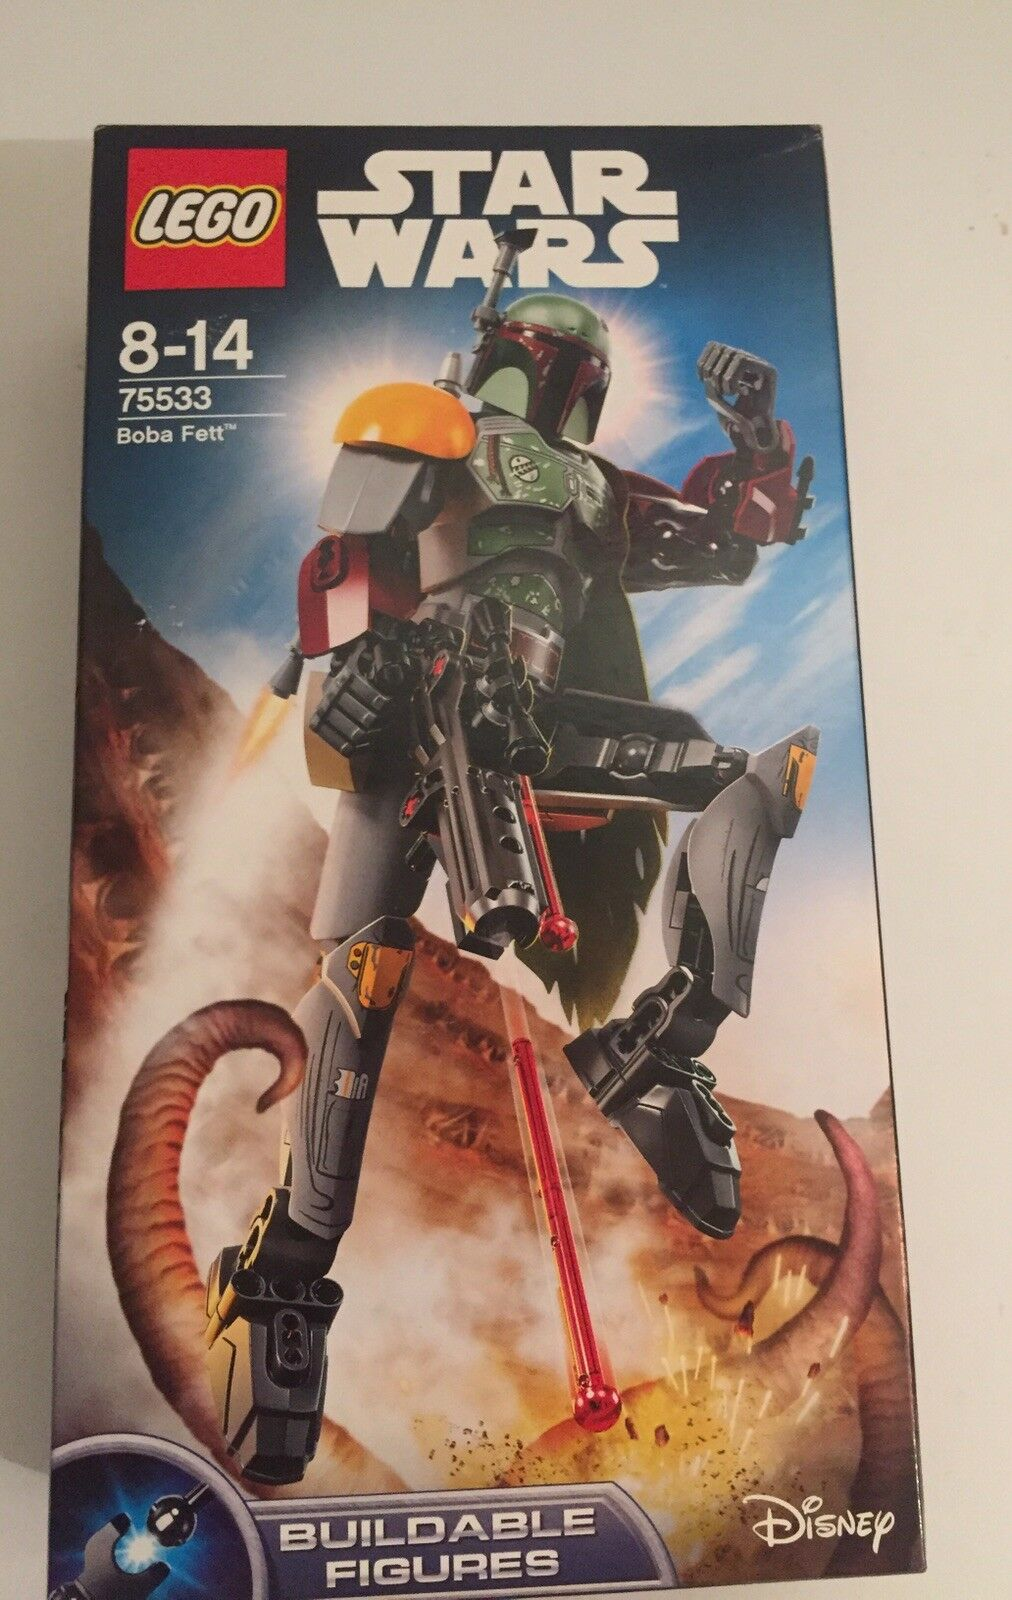 Lego Star Wars Buildable Figures  Boba Fett 75533 NEW